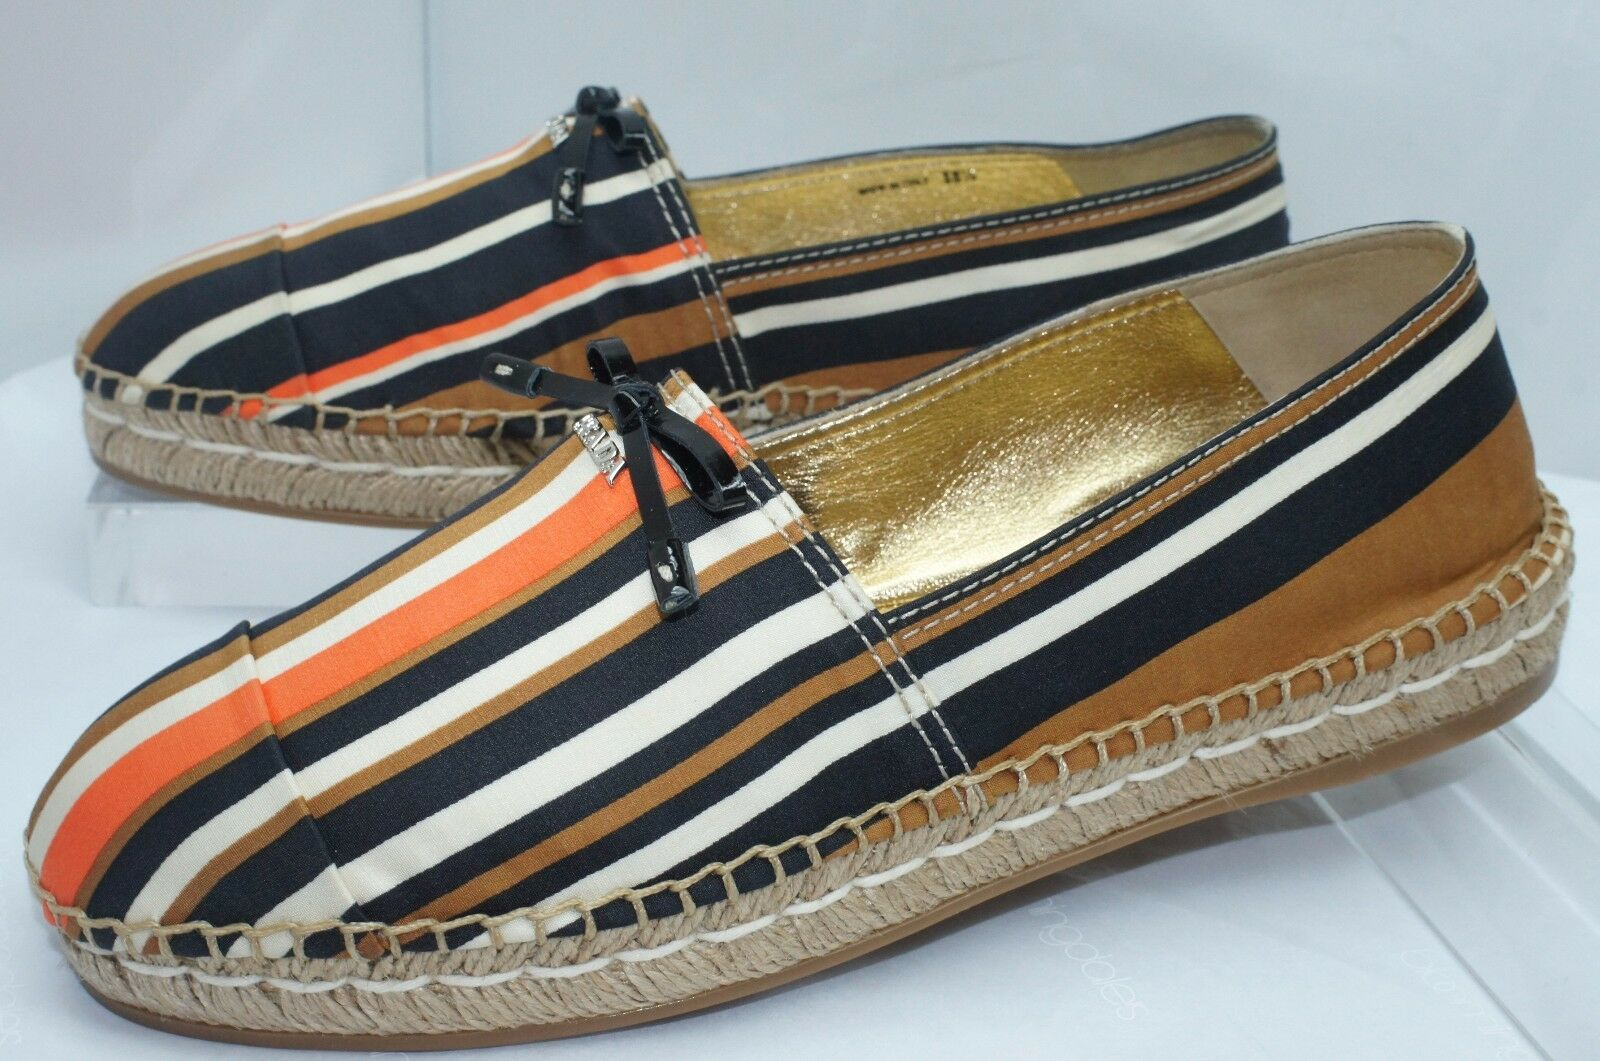 New Prada Womens shoes Espadrilles Flats Size 38.5 Calzature women Holiday Sale